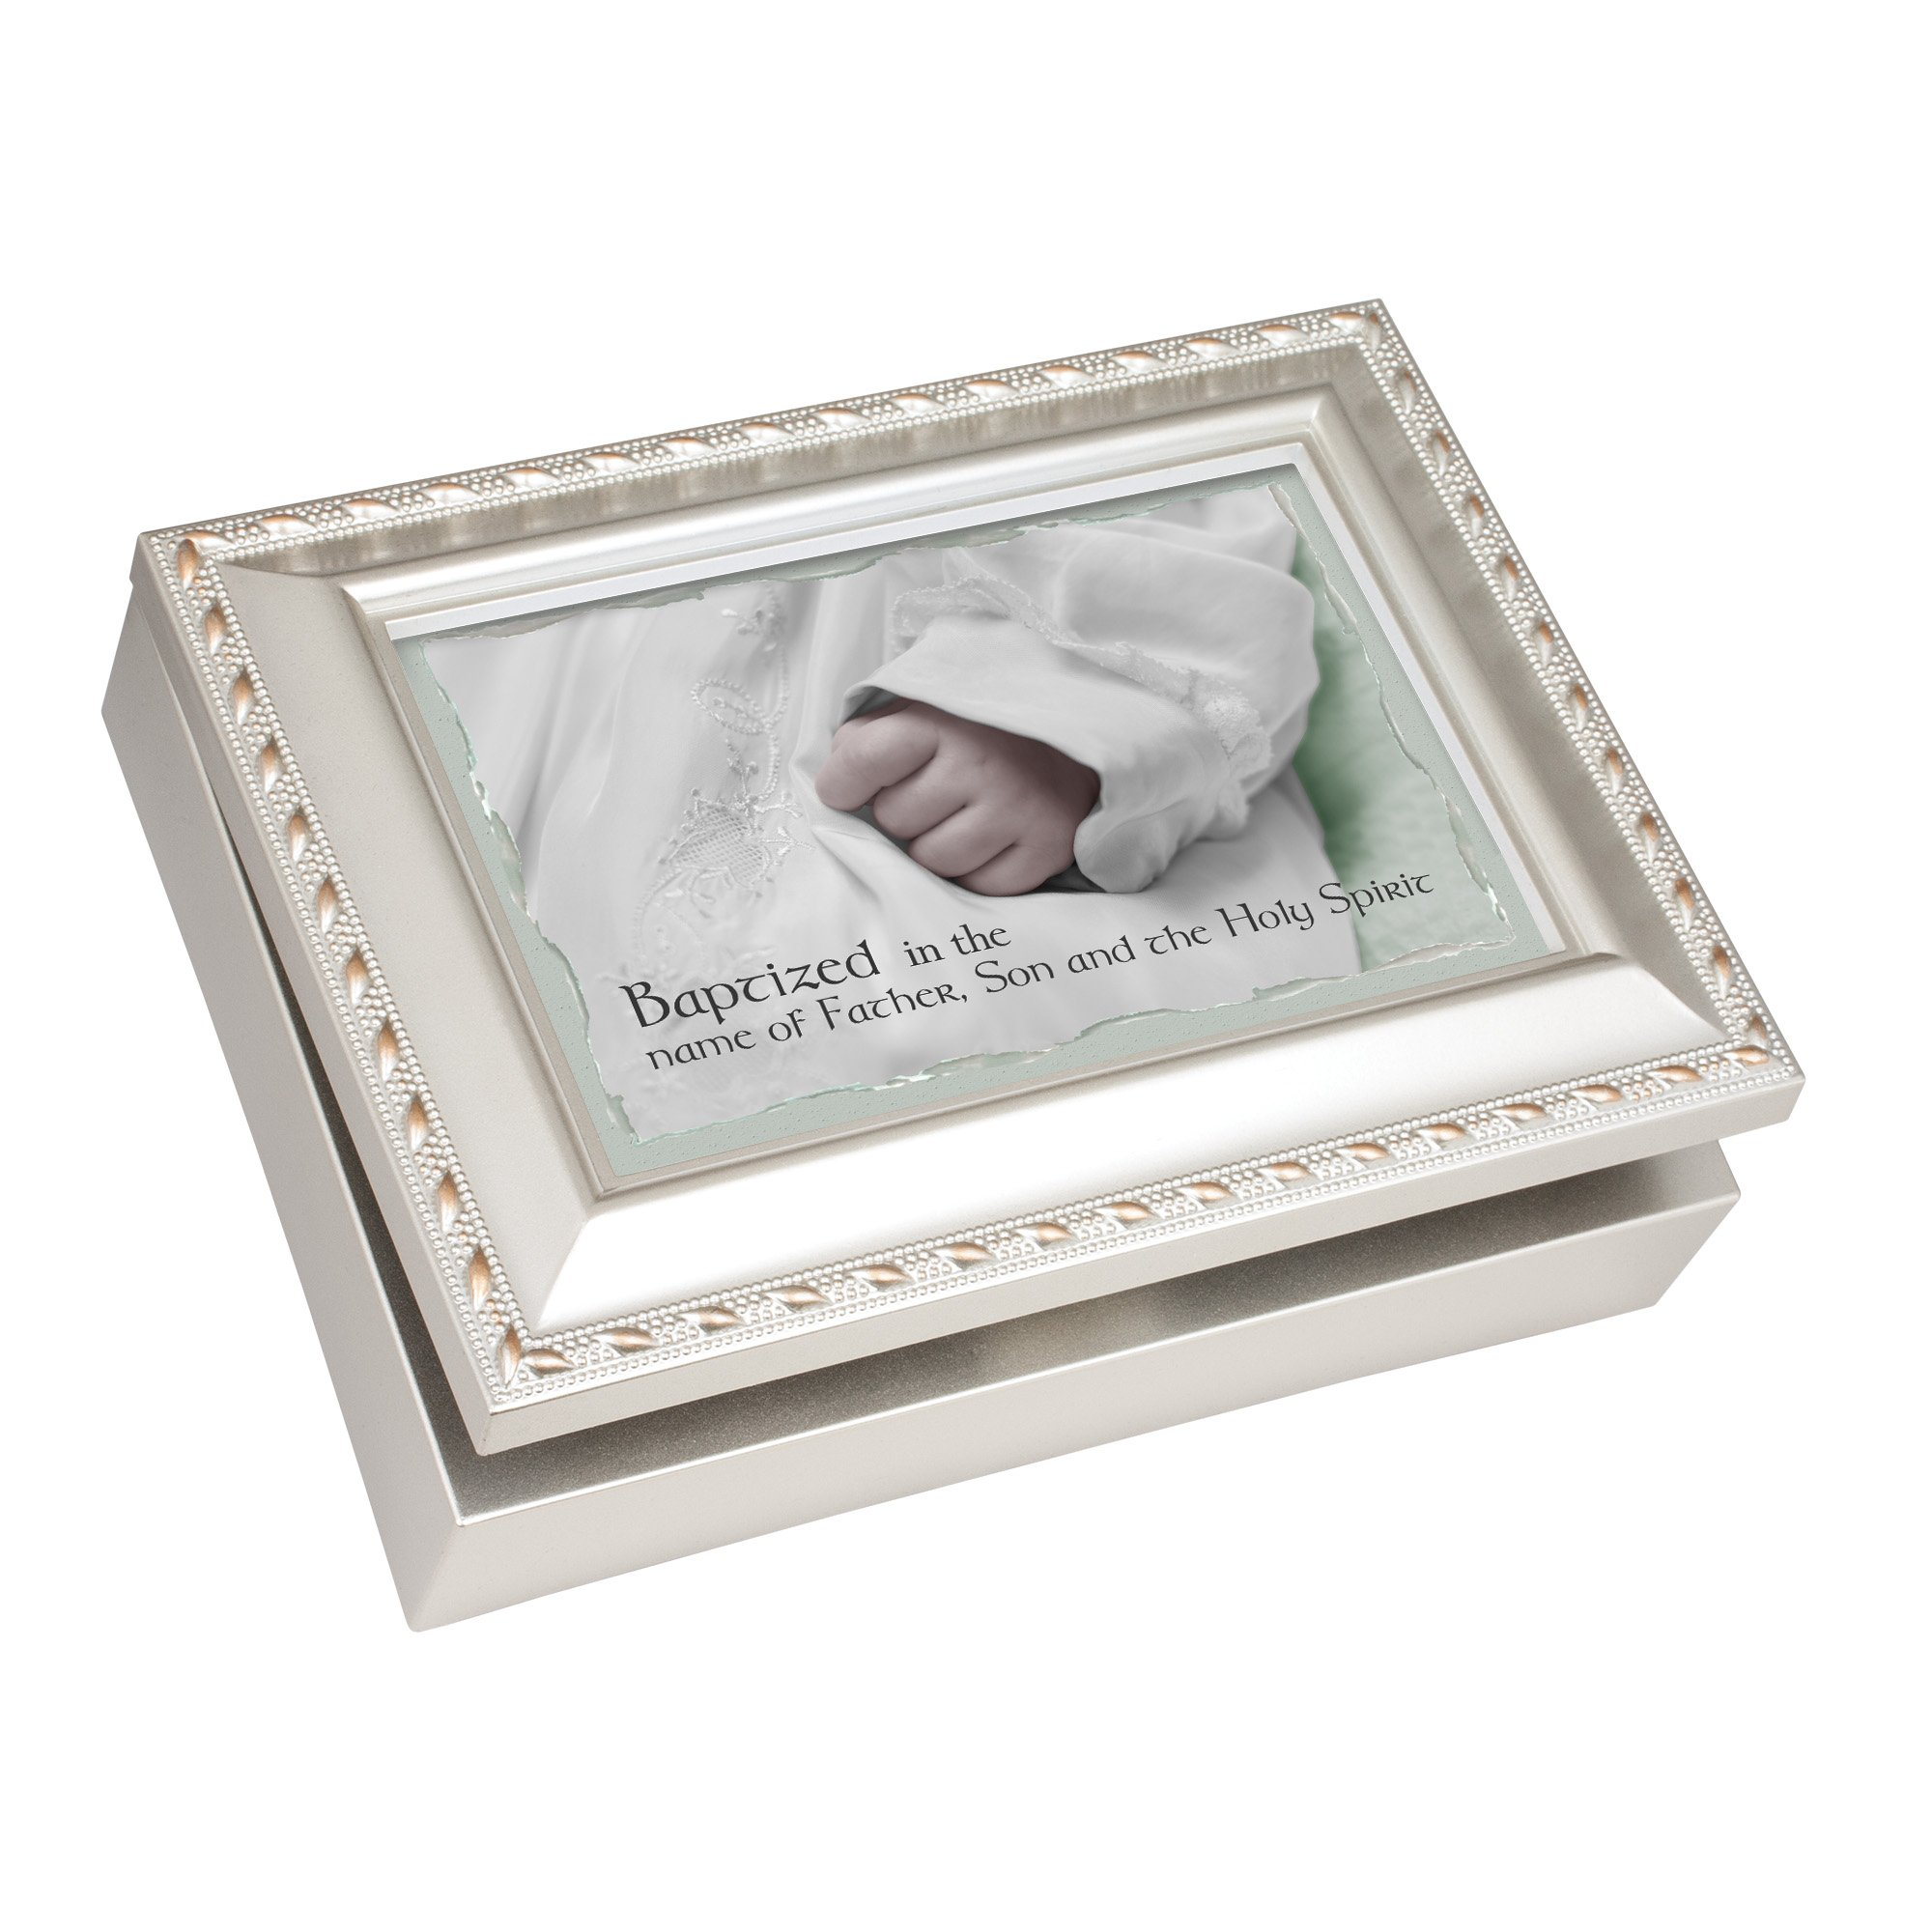 Baptized Father Son Holy Spirit 8 x 6 Inch Champagne Silver Keepsake Music Jewelry Box Plays Jesus Loves Me